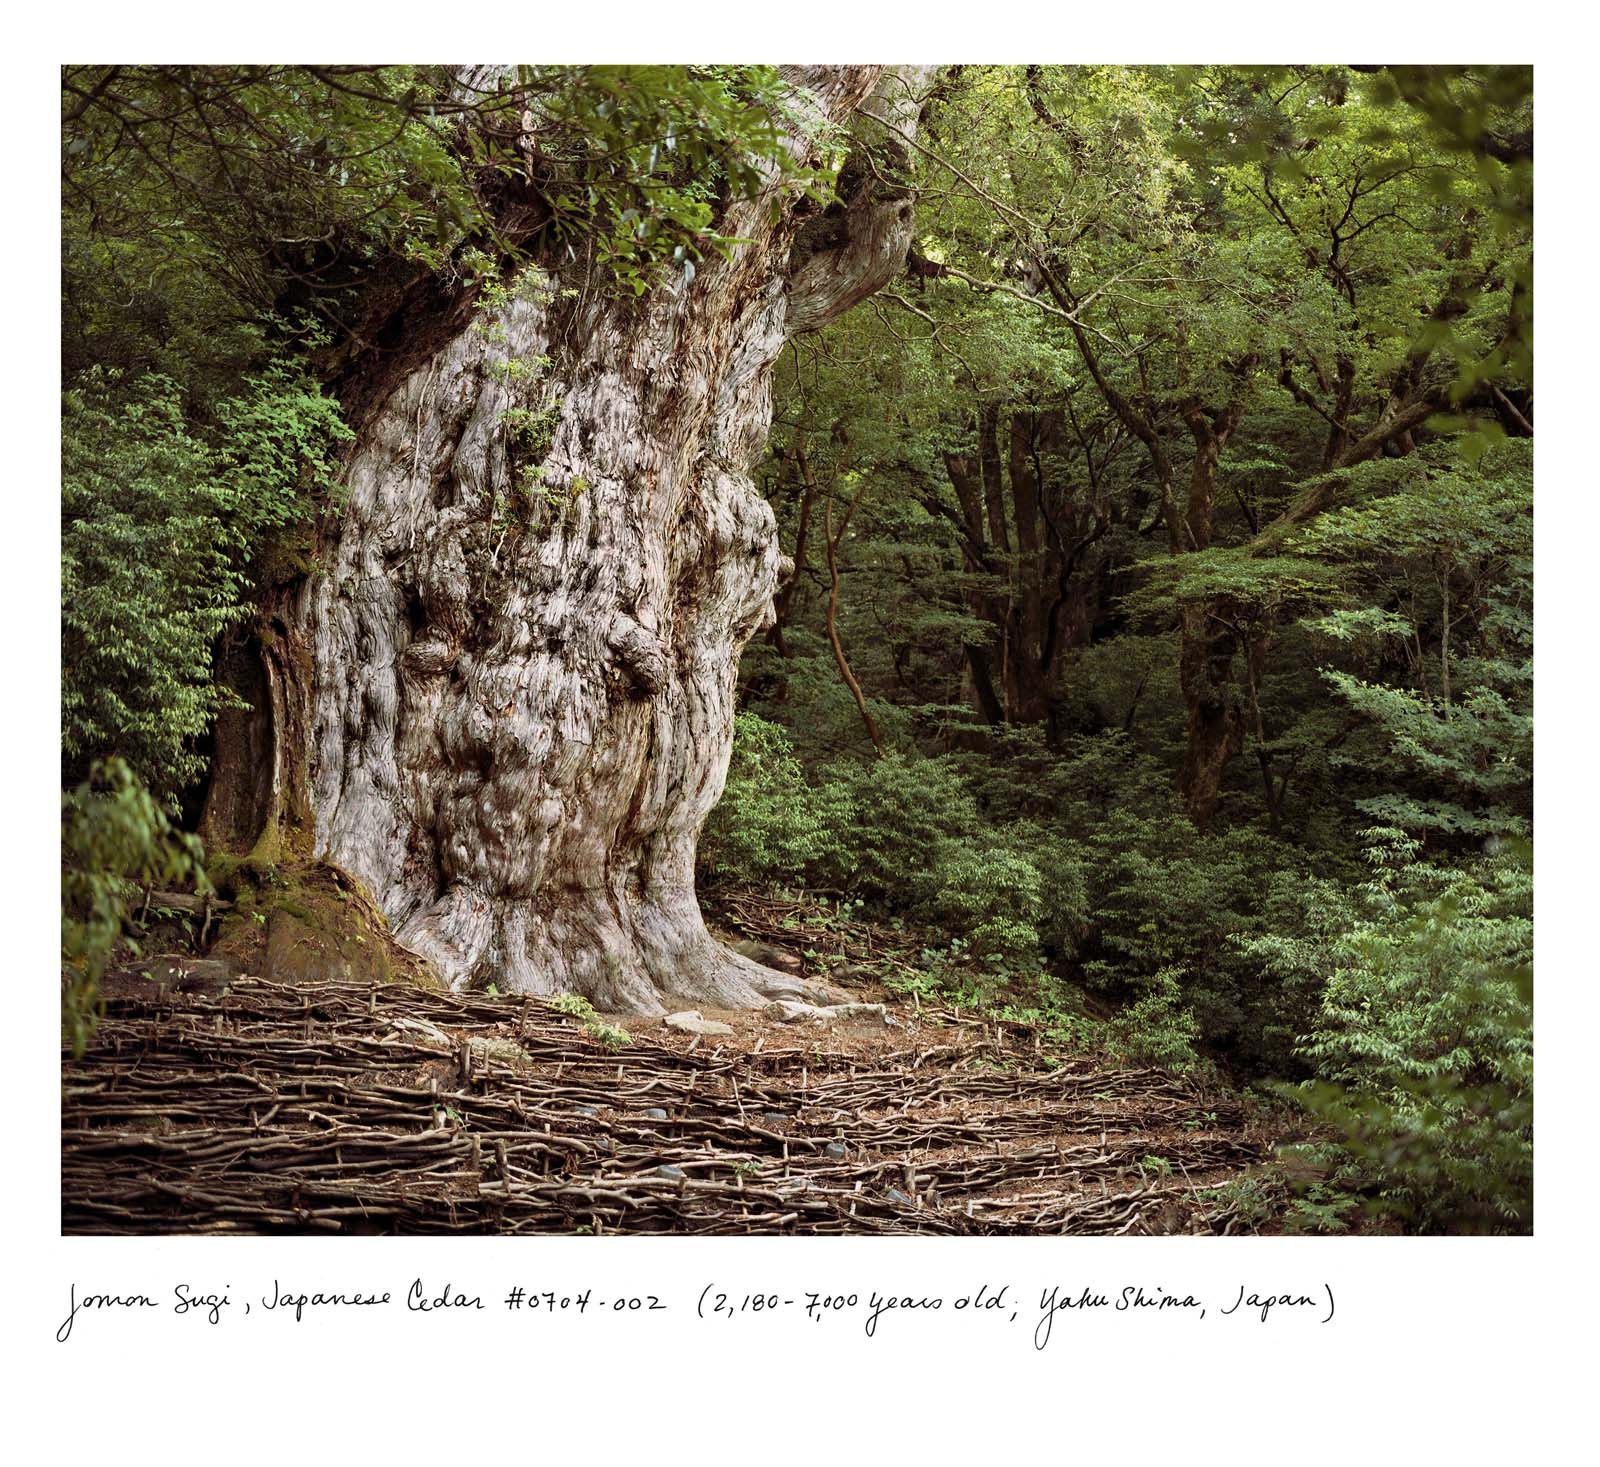 a photo of a tree with a large trunk